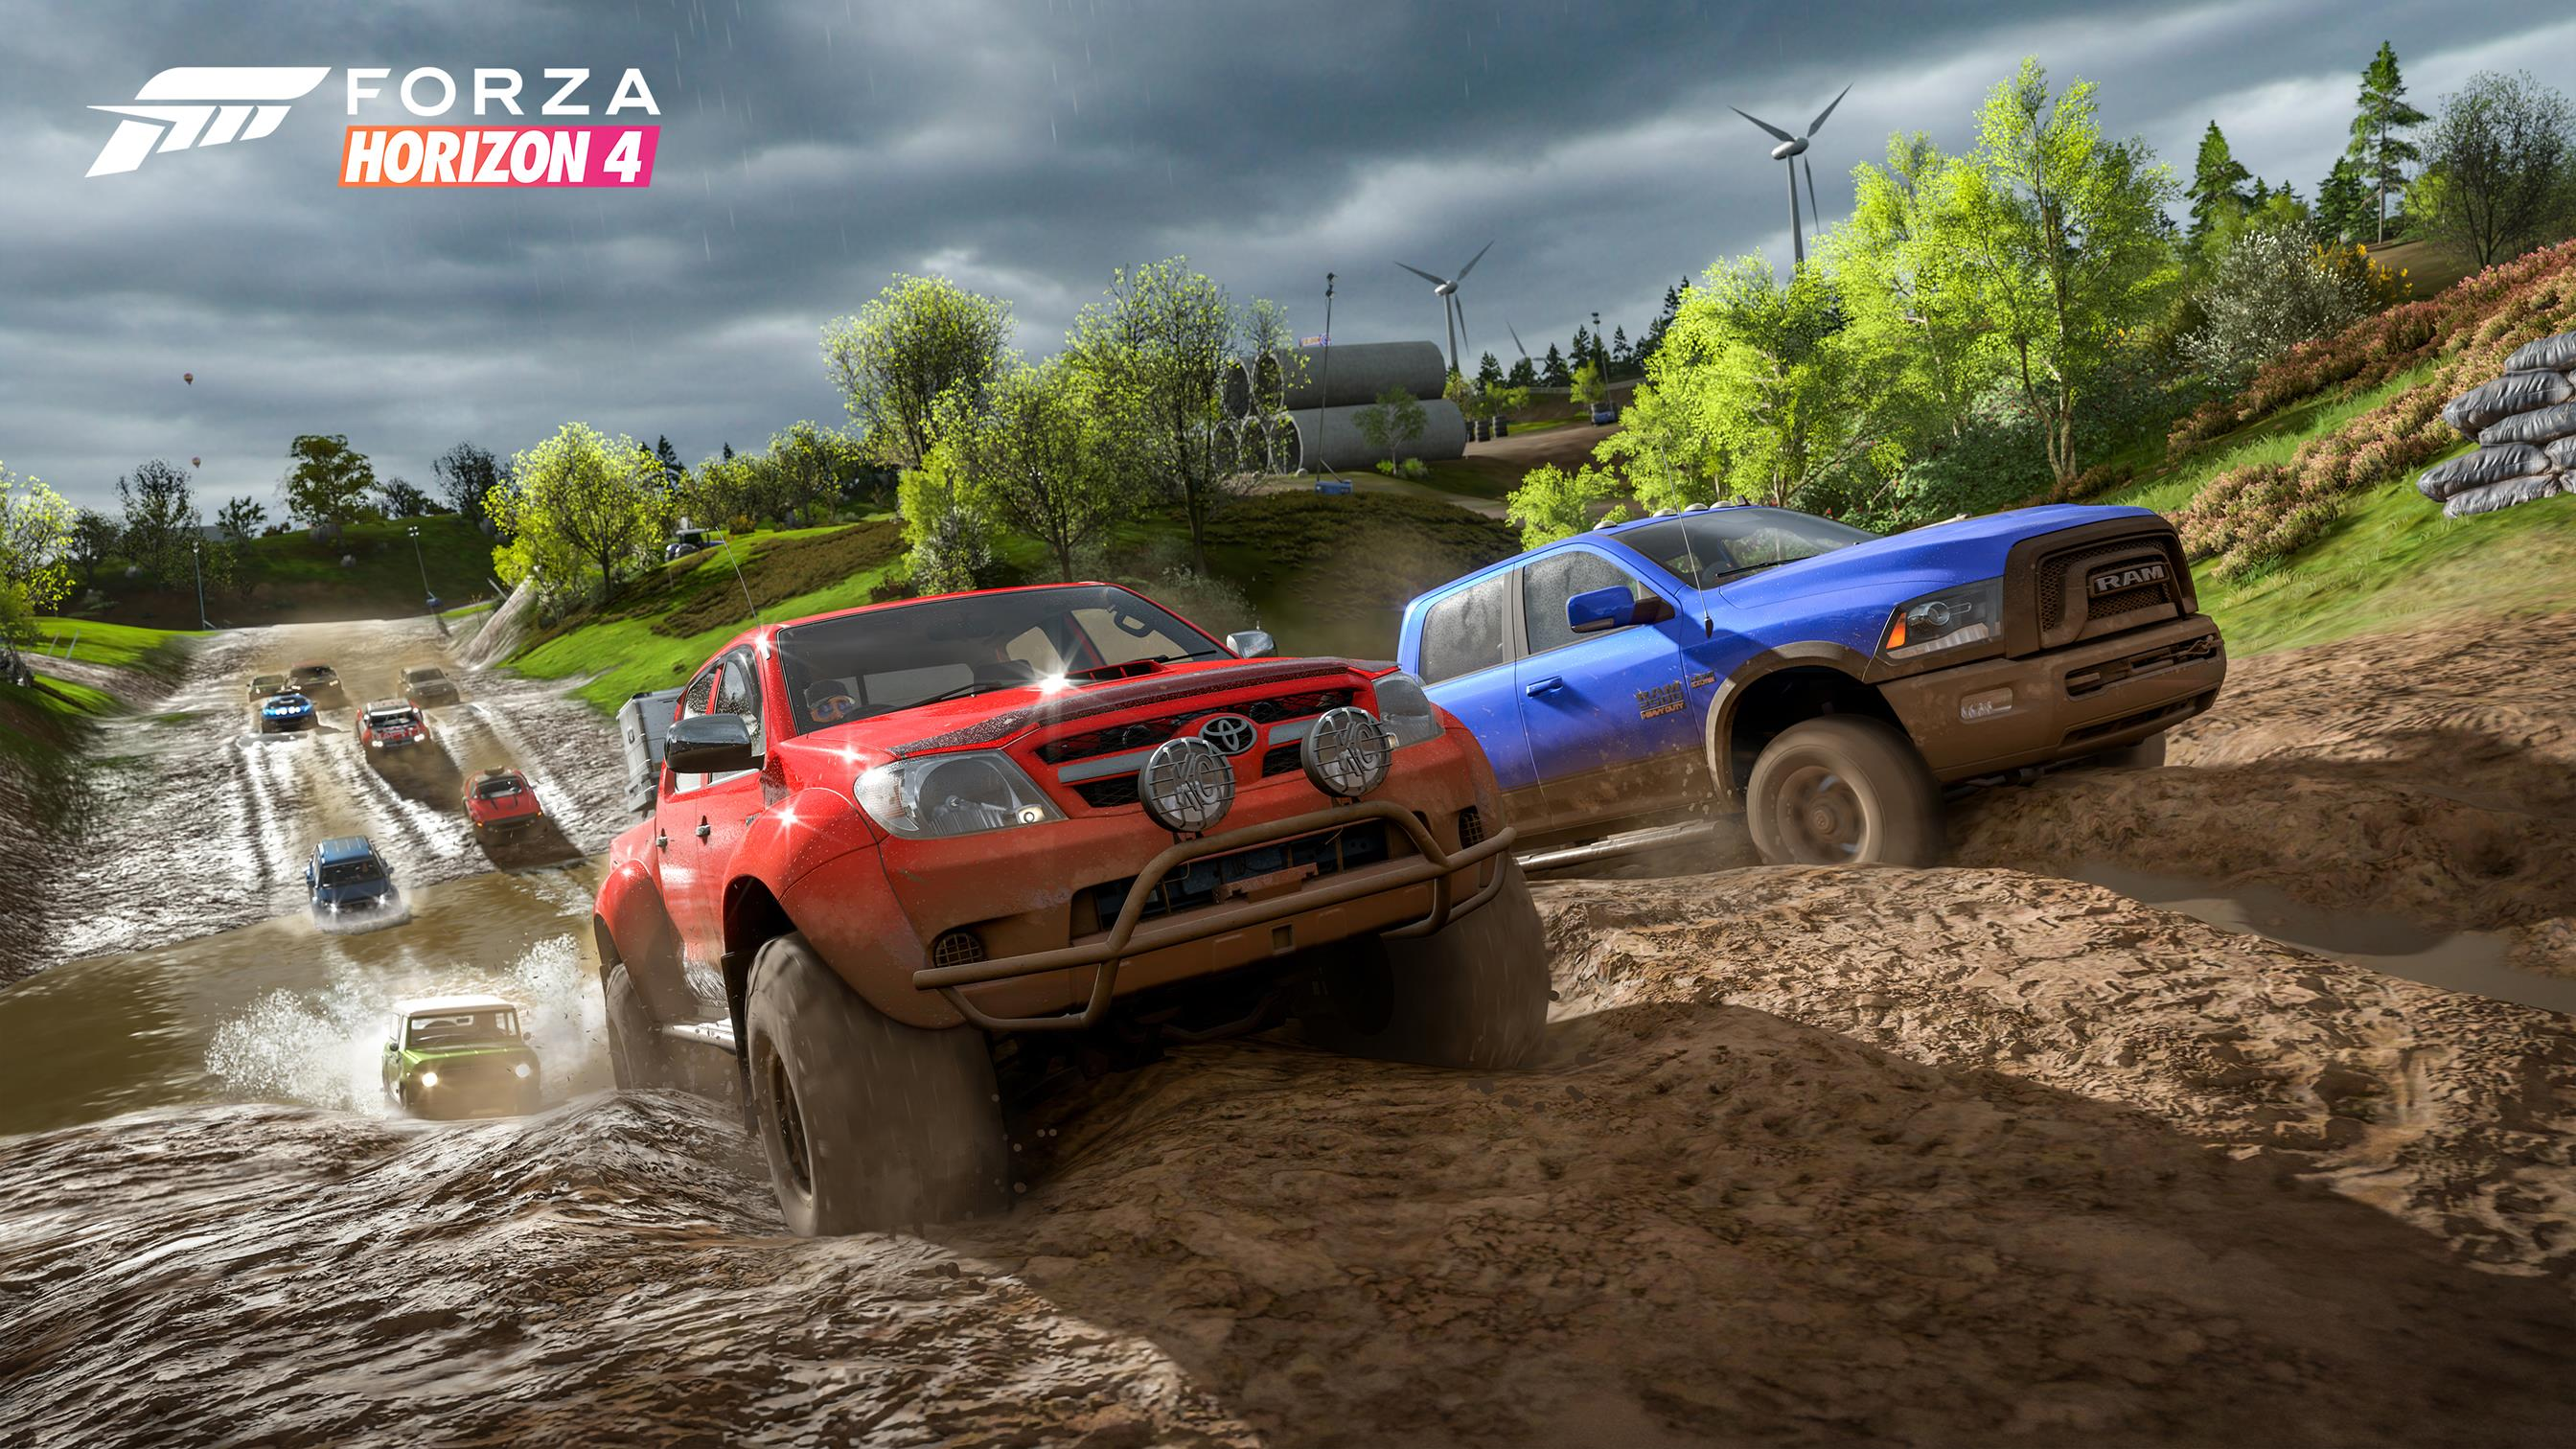 Forza Horizon 4 Demo Available Now on Xbox One and PC